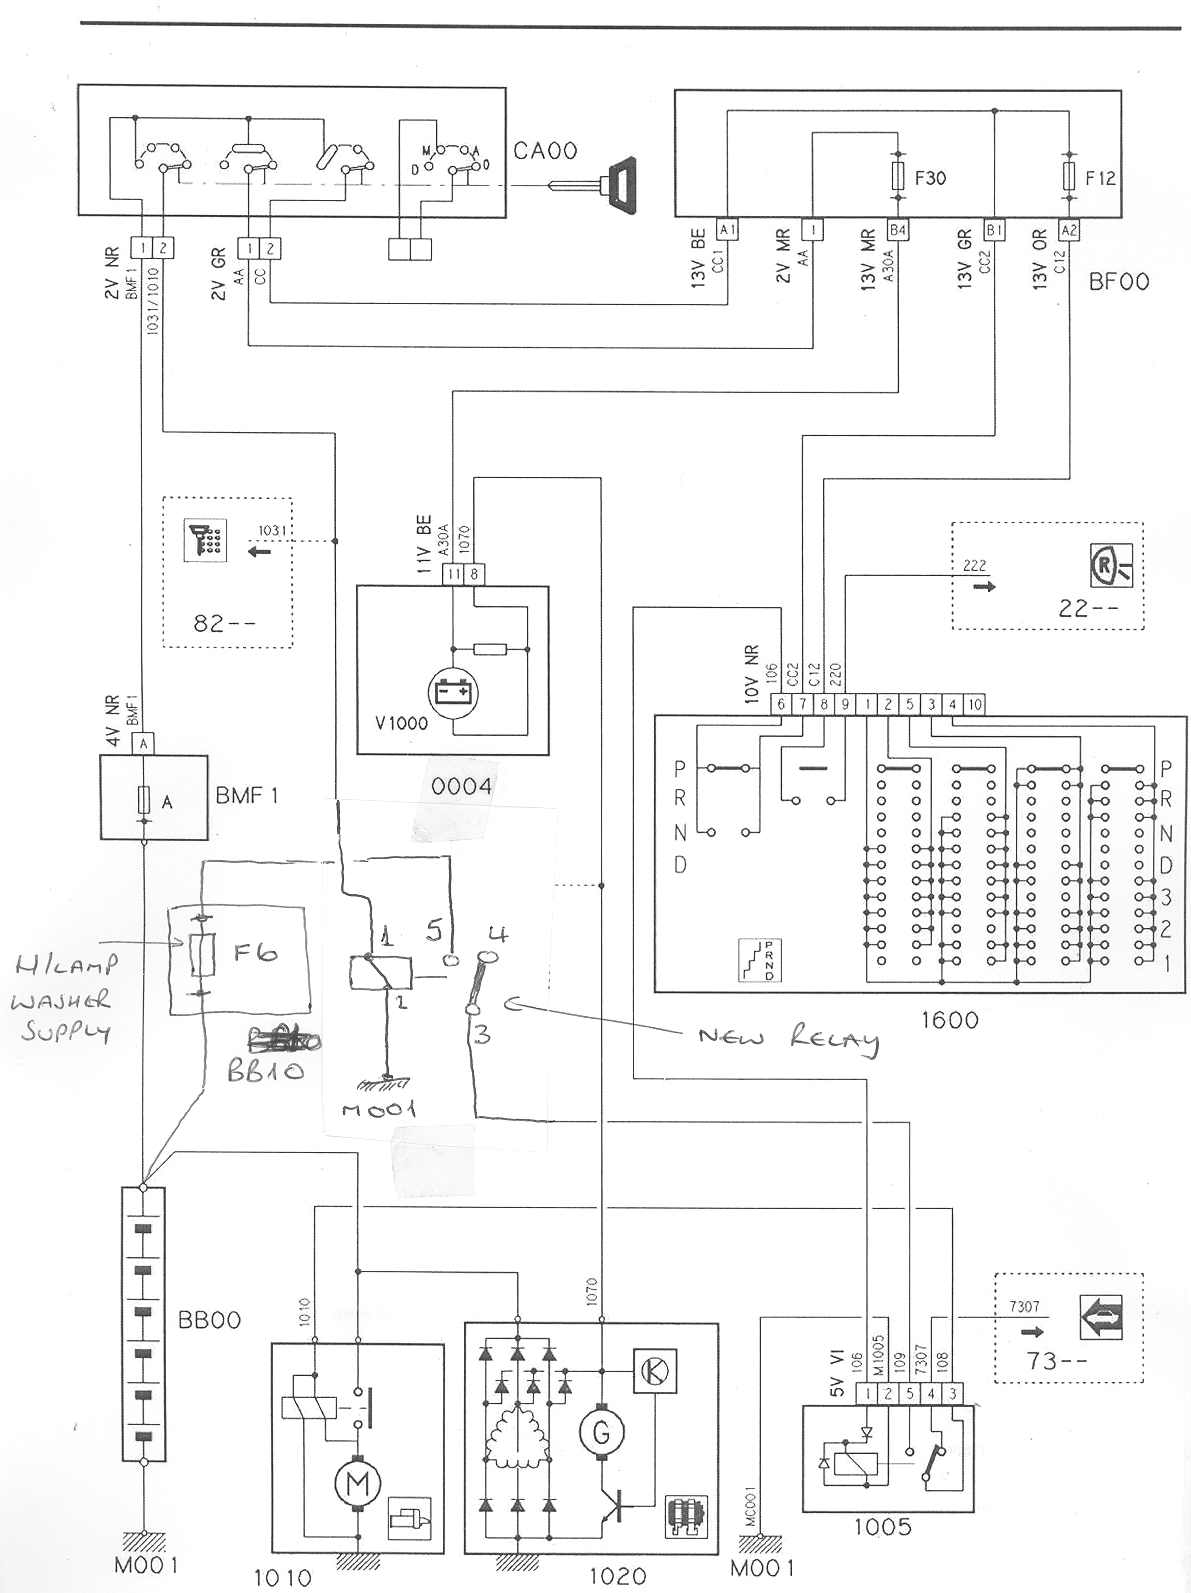 citroen c3 2007 radio wiring diagram rheem air conditioner adding a starter relay to counteract failing ignition